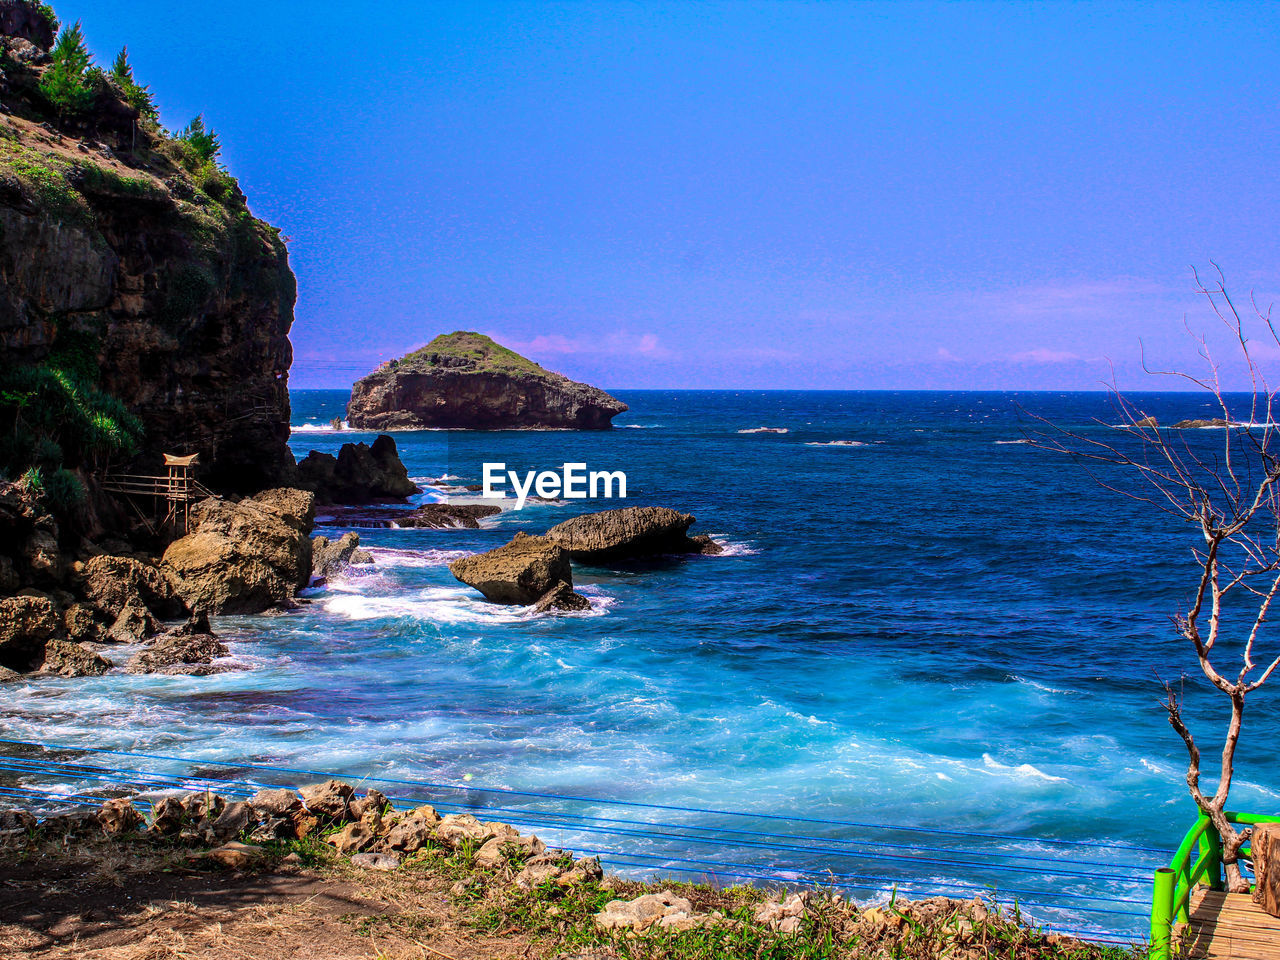 sea, water, rock, beauty in nature, scenics - nature, rock - object, sky, solid, horizon over water, rock formation, land, horizon, beach, blue, tranquil scene, tranquility, nature, day, cliff, no people, outdoors, stack rock, eroded, rocky coastline